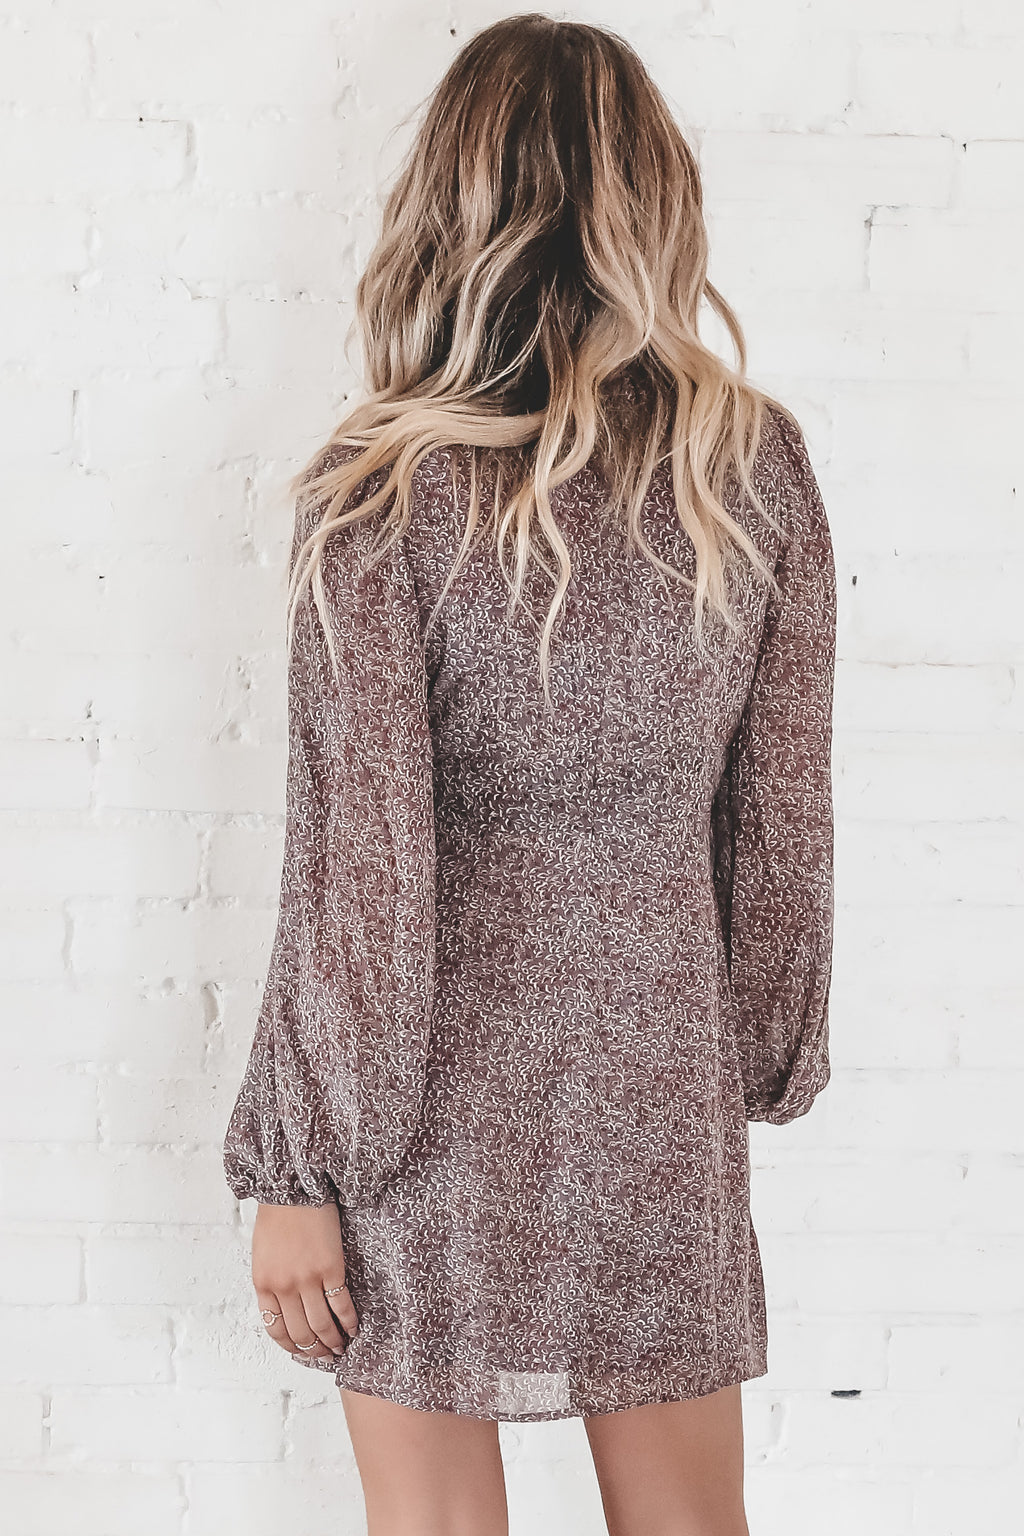 Over You Long Sleeve Mini Dress